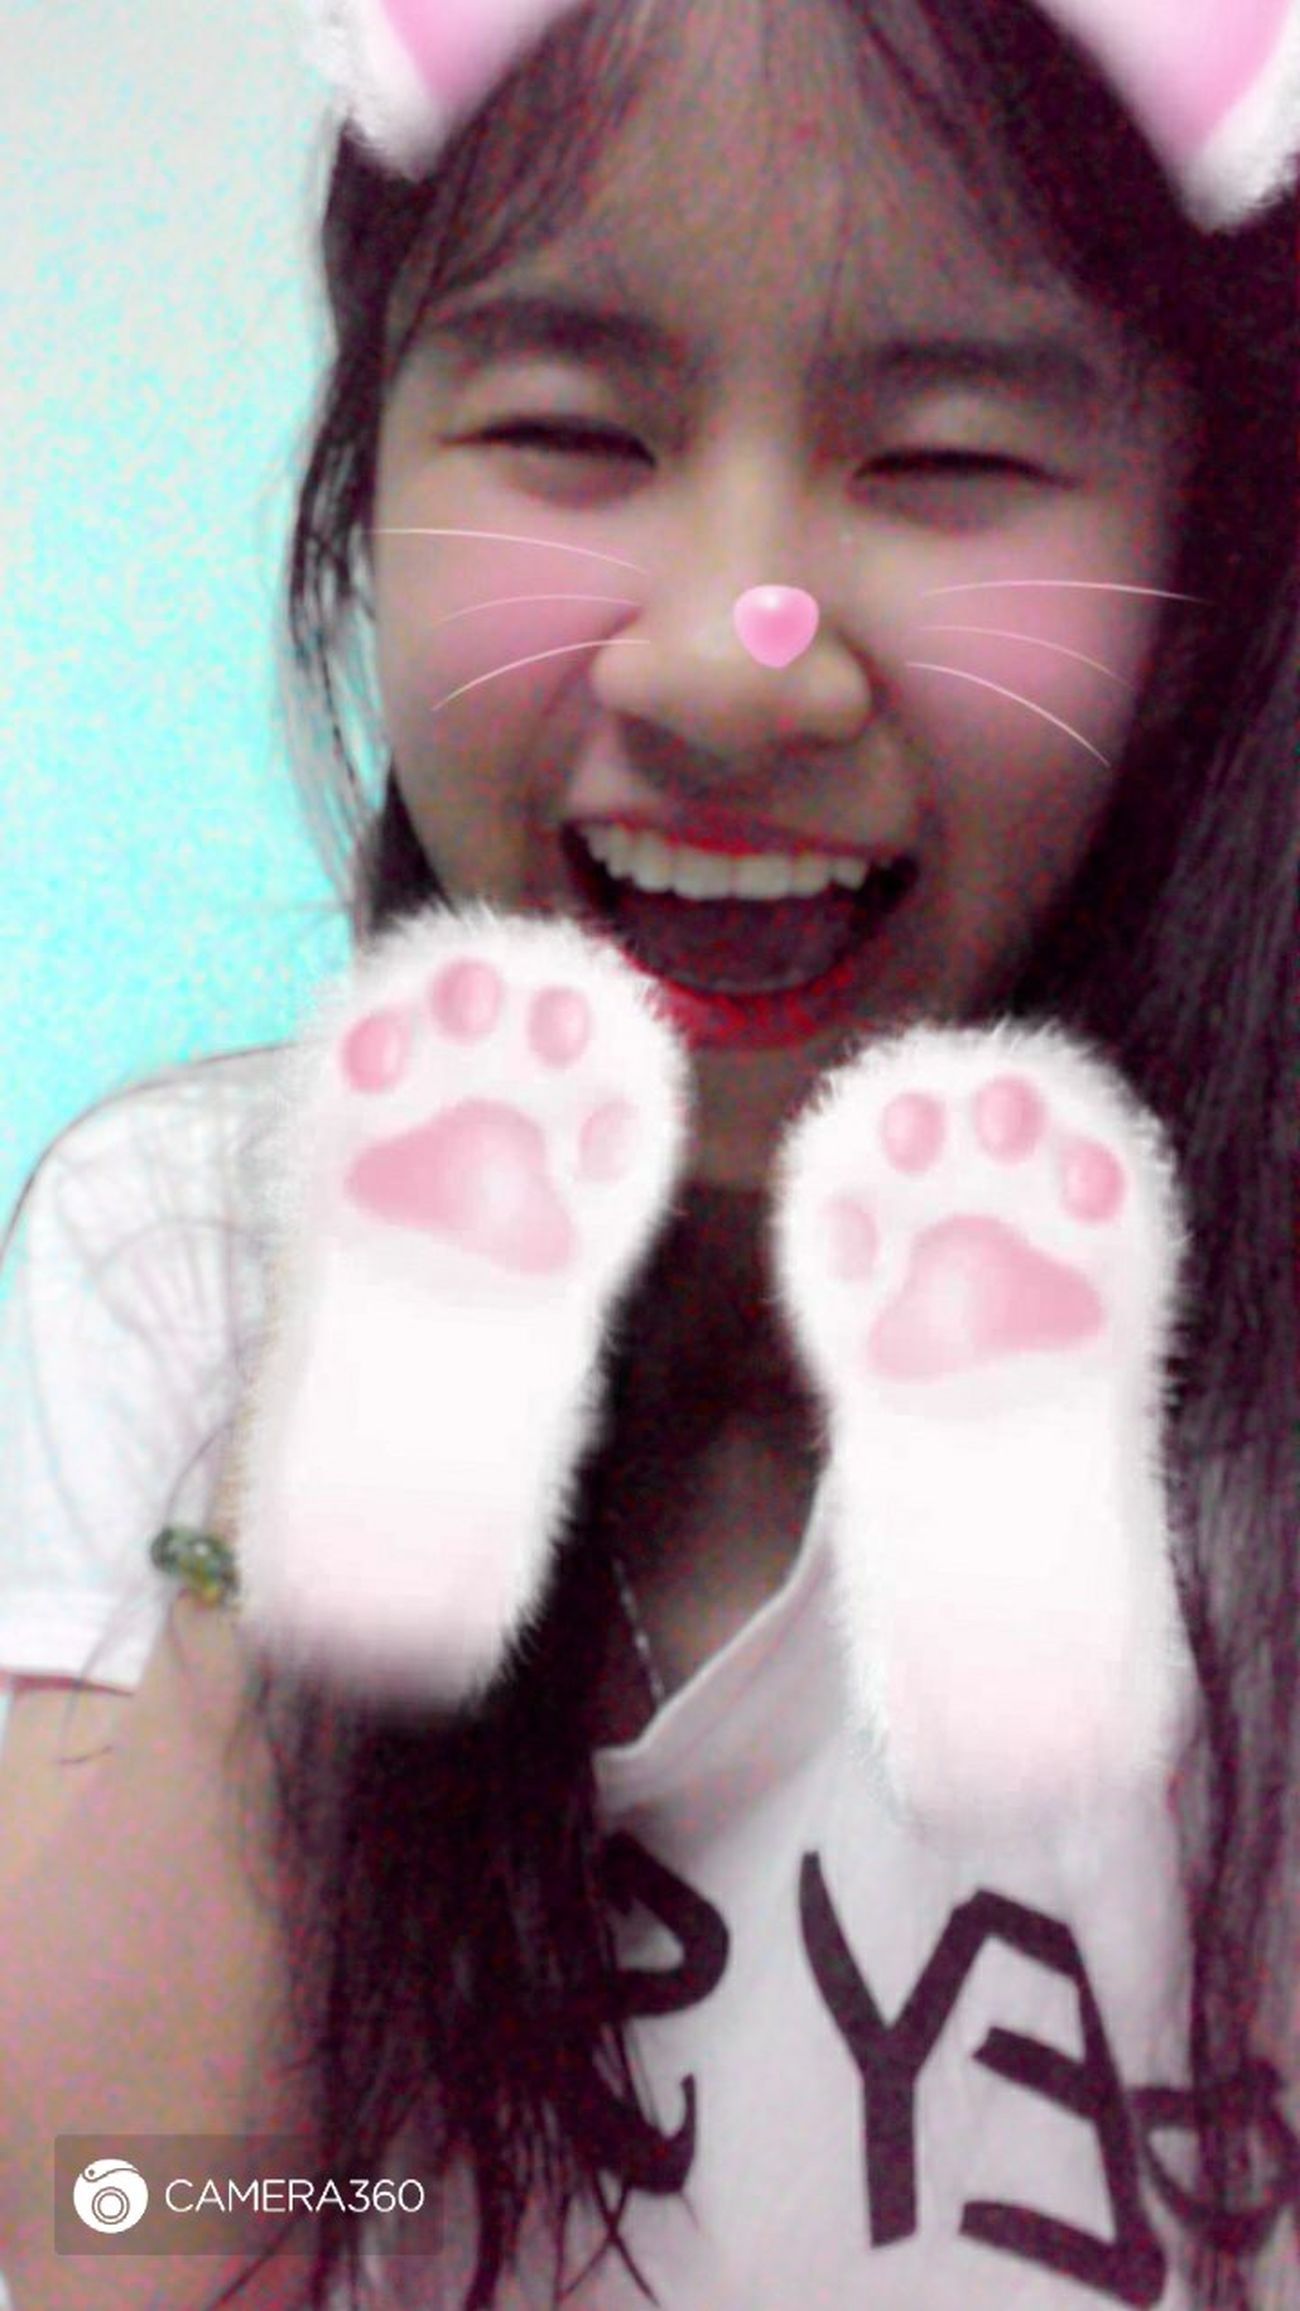 Meow... Khitoi18 Be Strong Girl 加油 Beautiful 很可爱 Kids Being Kids Girl Hi Mắt Hí Hihi In My Eyes🐈🐈